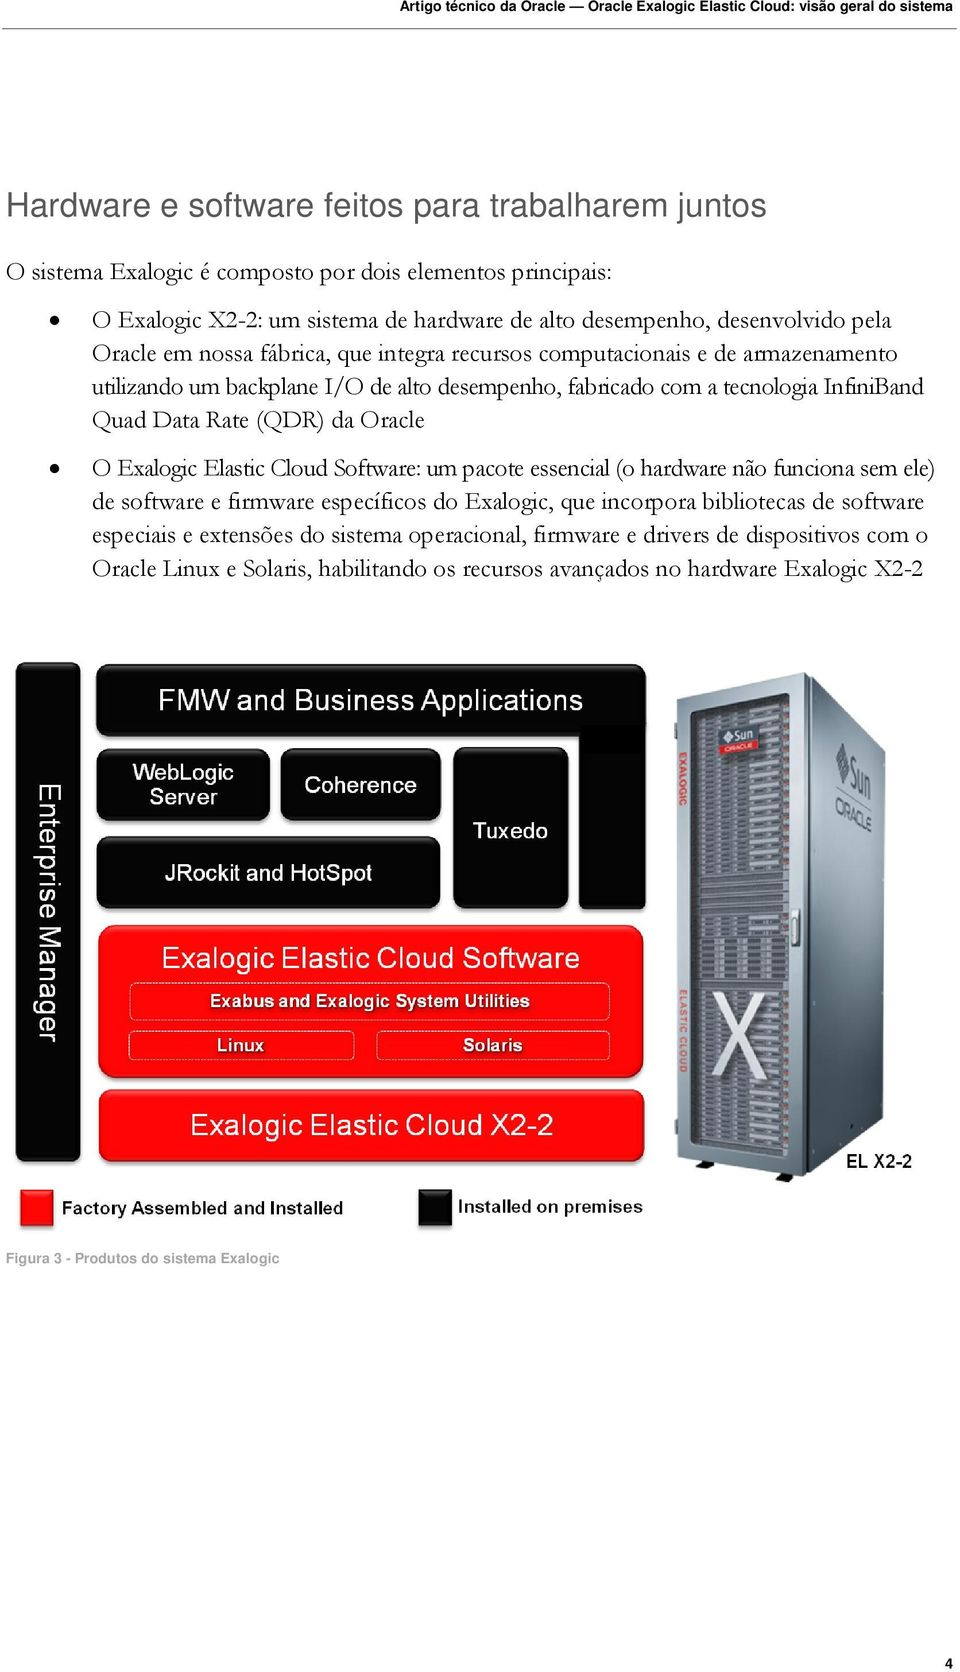 Oracle O Exalogic Elastic Cloud Software: um pacote essencial (o hardware não funciona sem ele) de software e firmware específicos do Exalogic, que incorpora bibliotecas de software especiais e